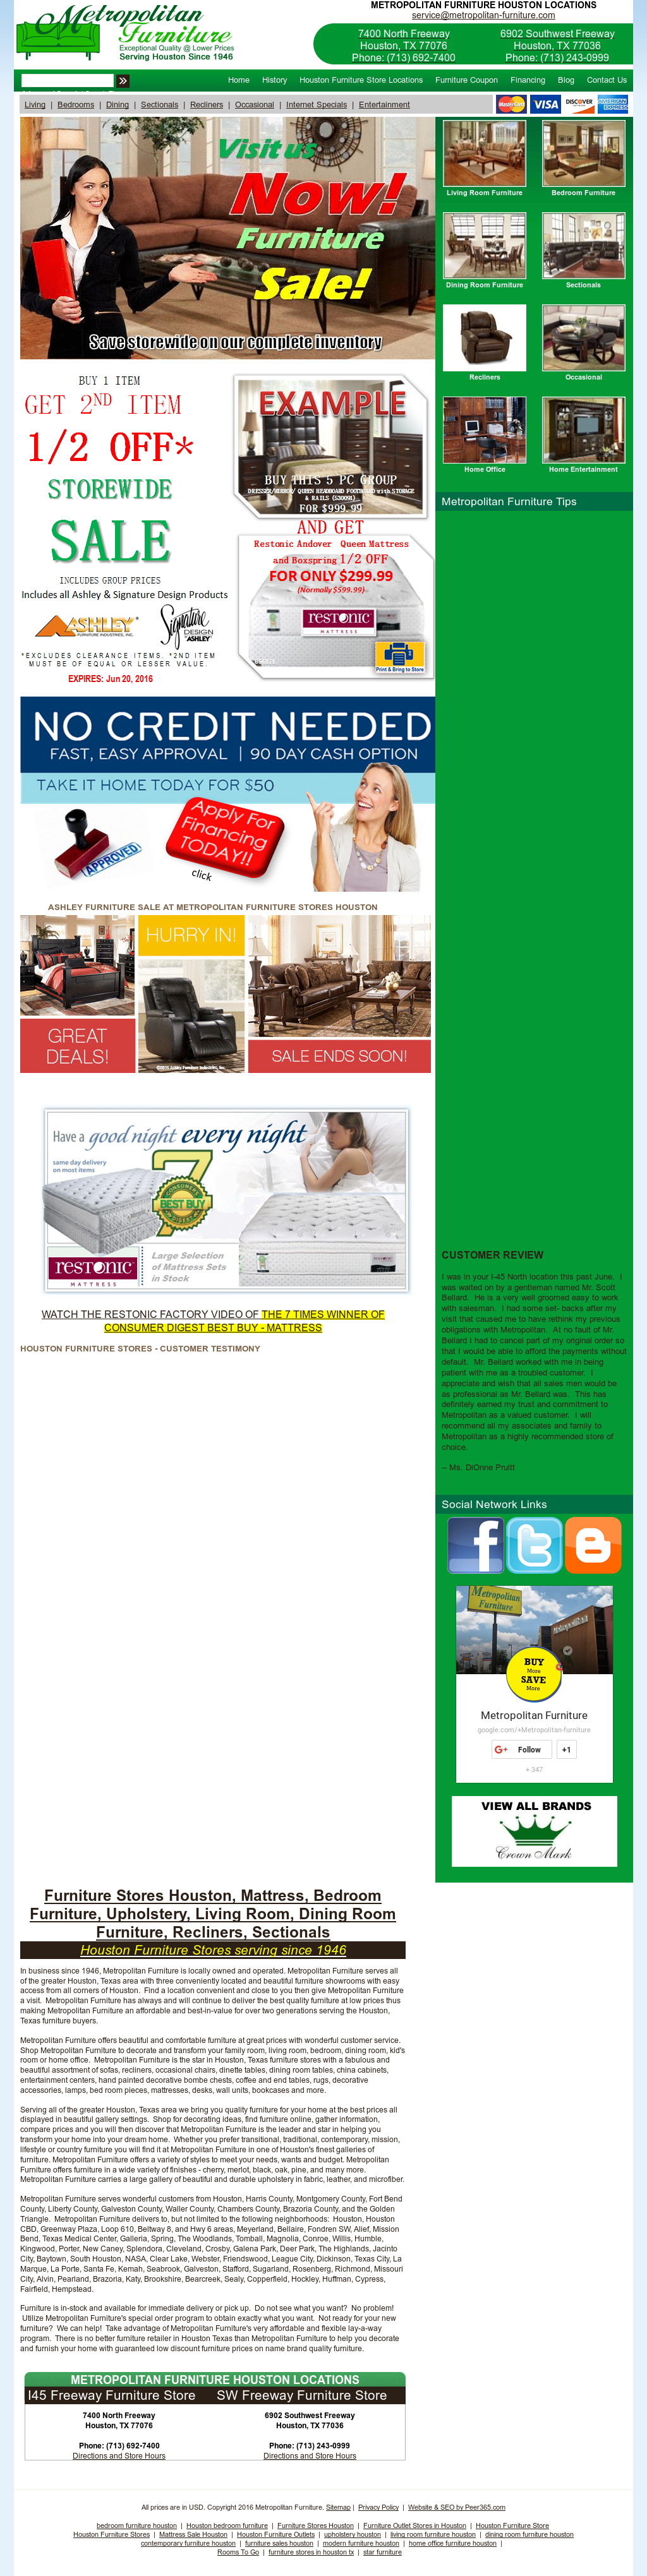 Charmant Metropolitan Furniture Website History